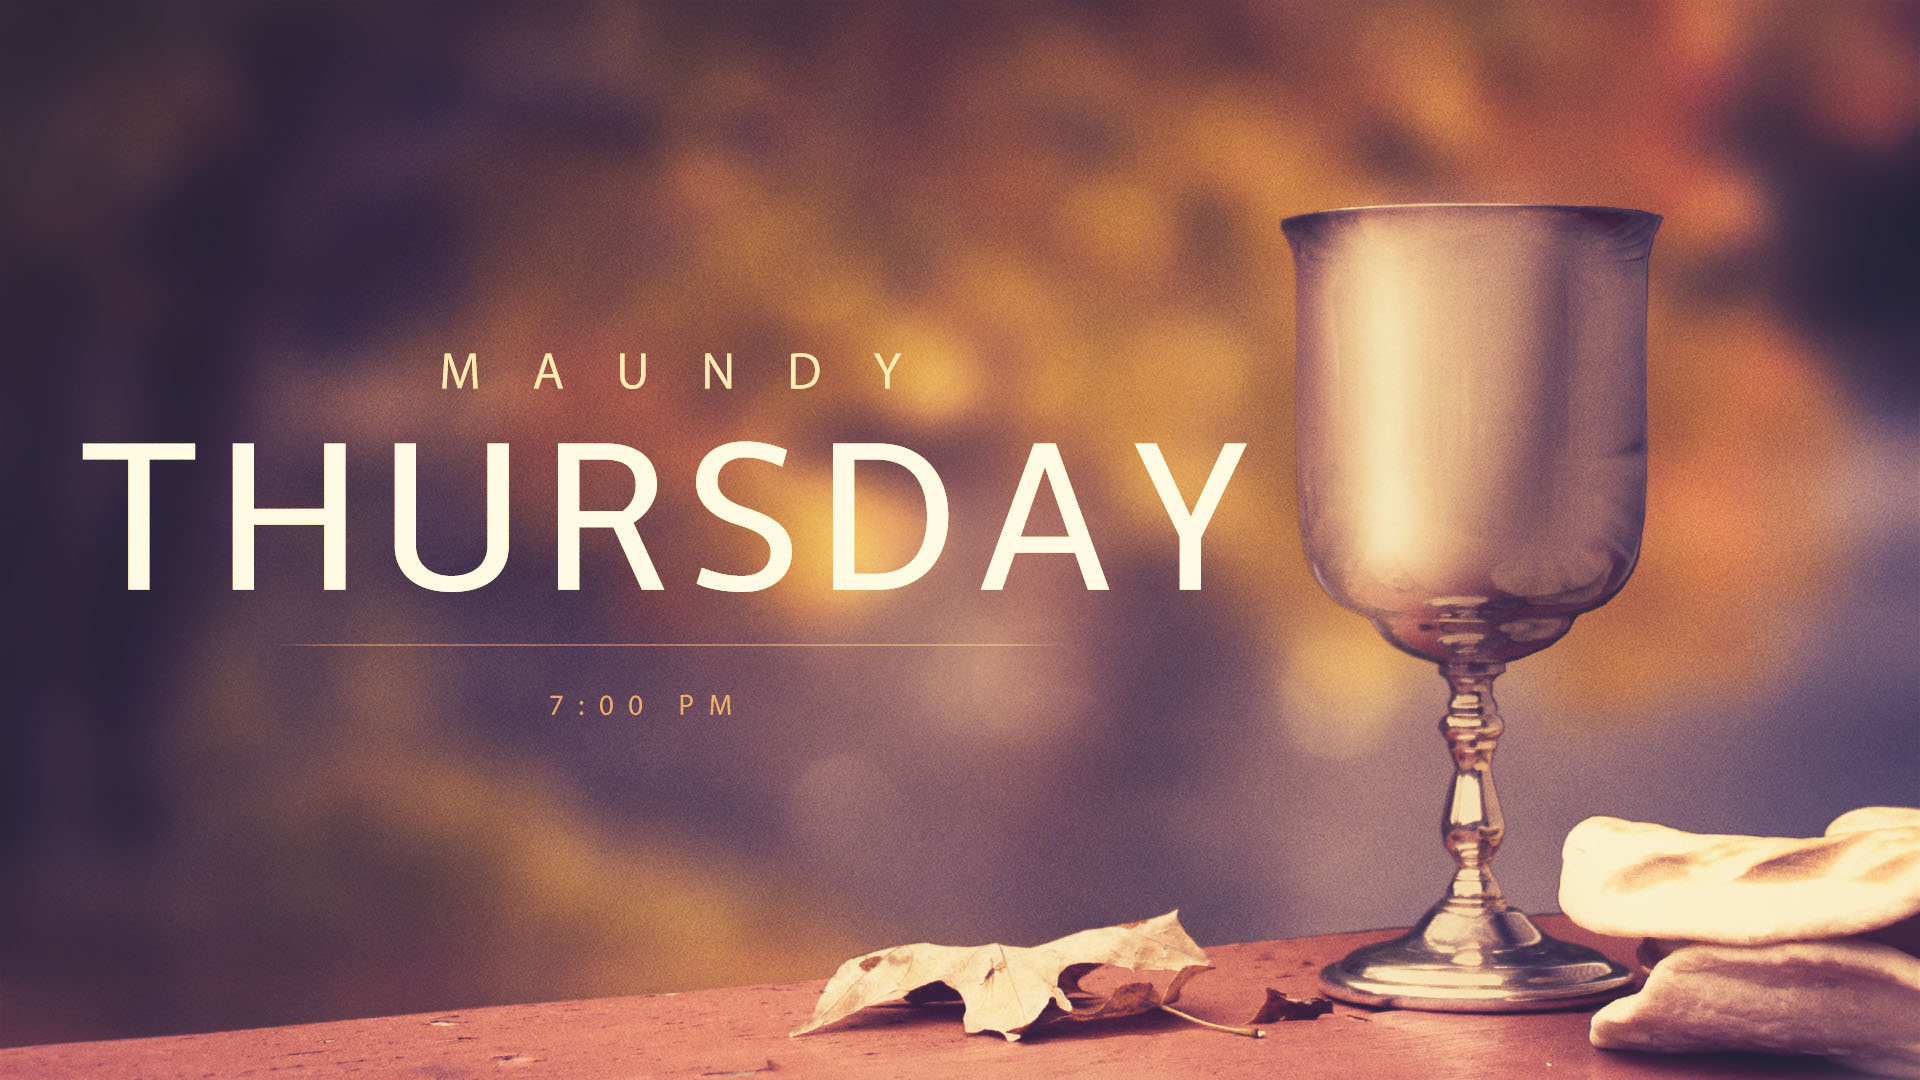 Maundy Thursday @ 7:00 PM